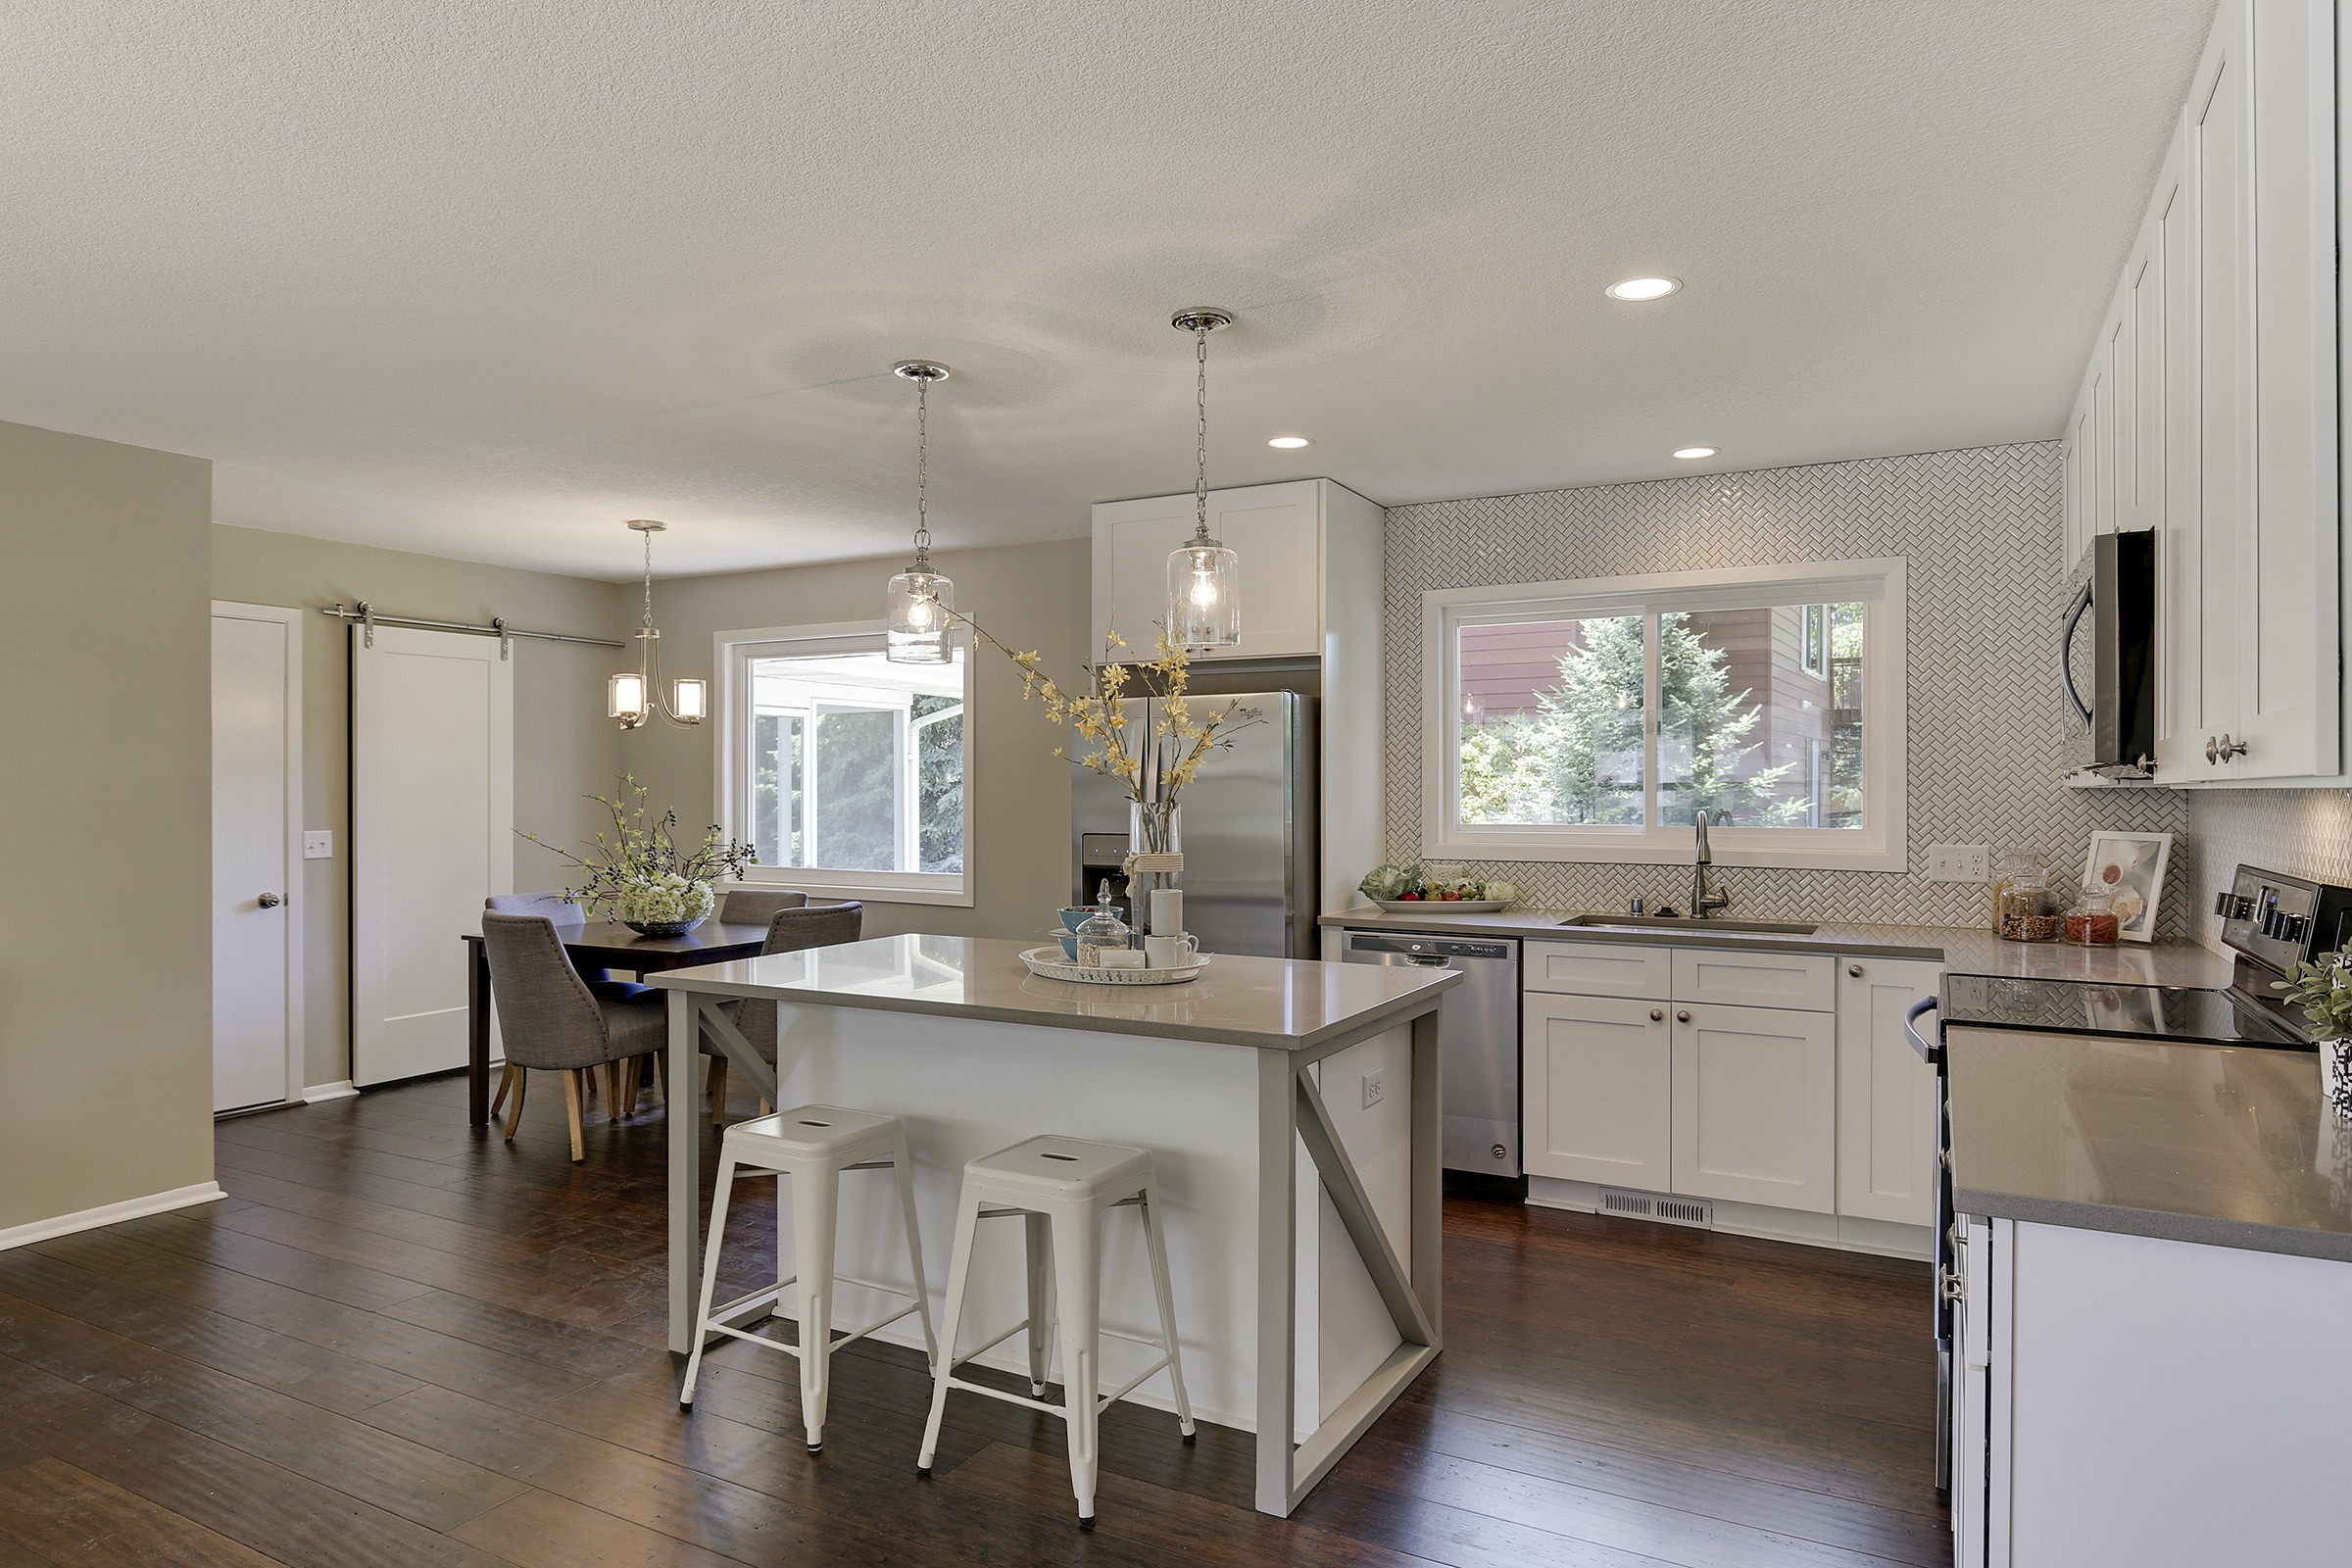 Click here to learn more about this home remodel project!